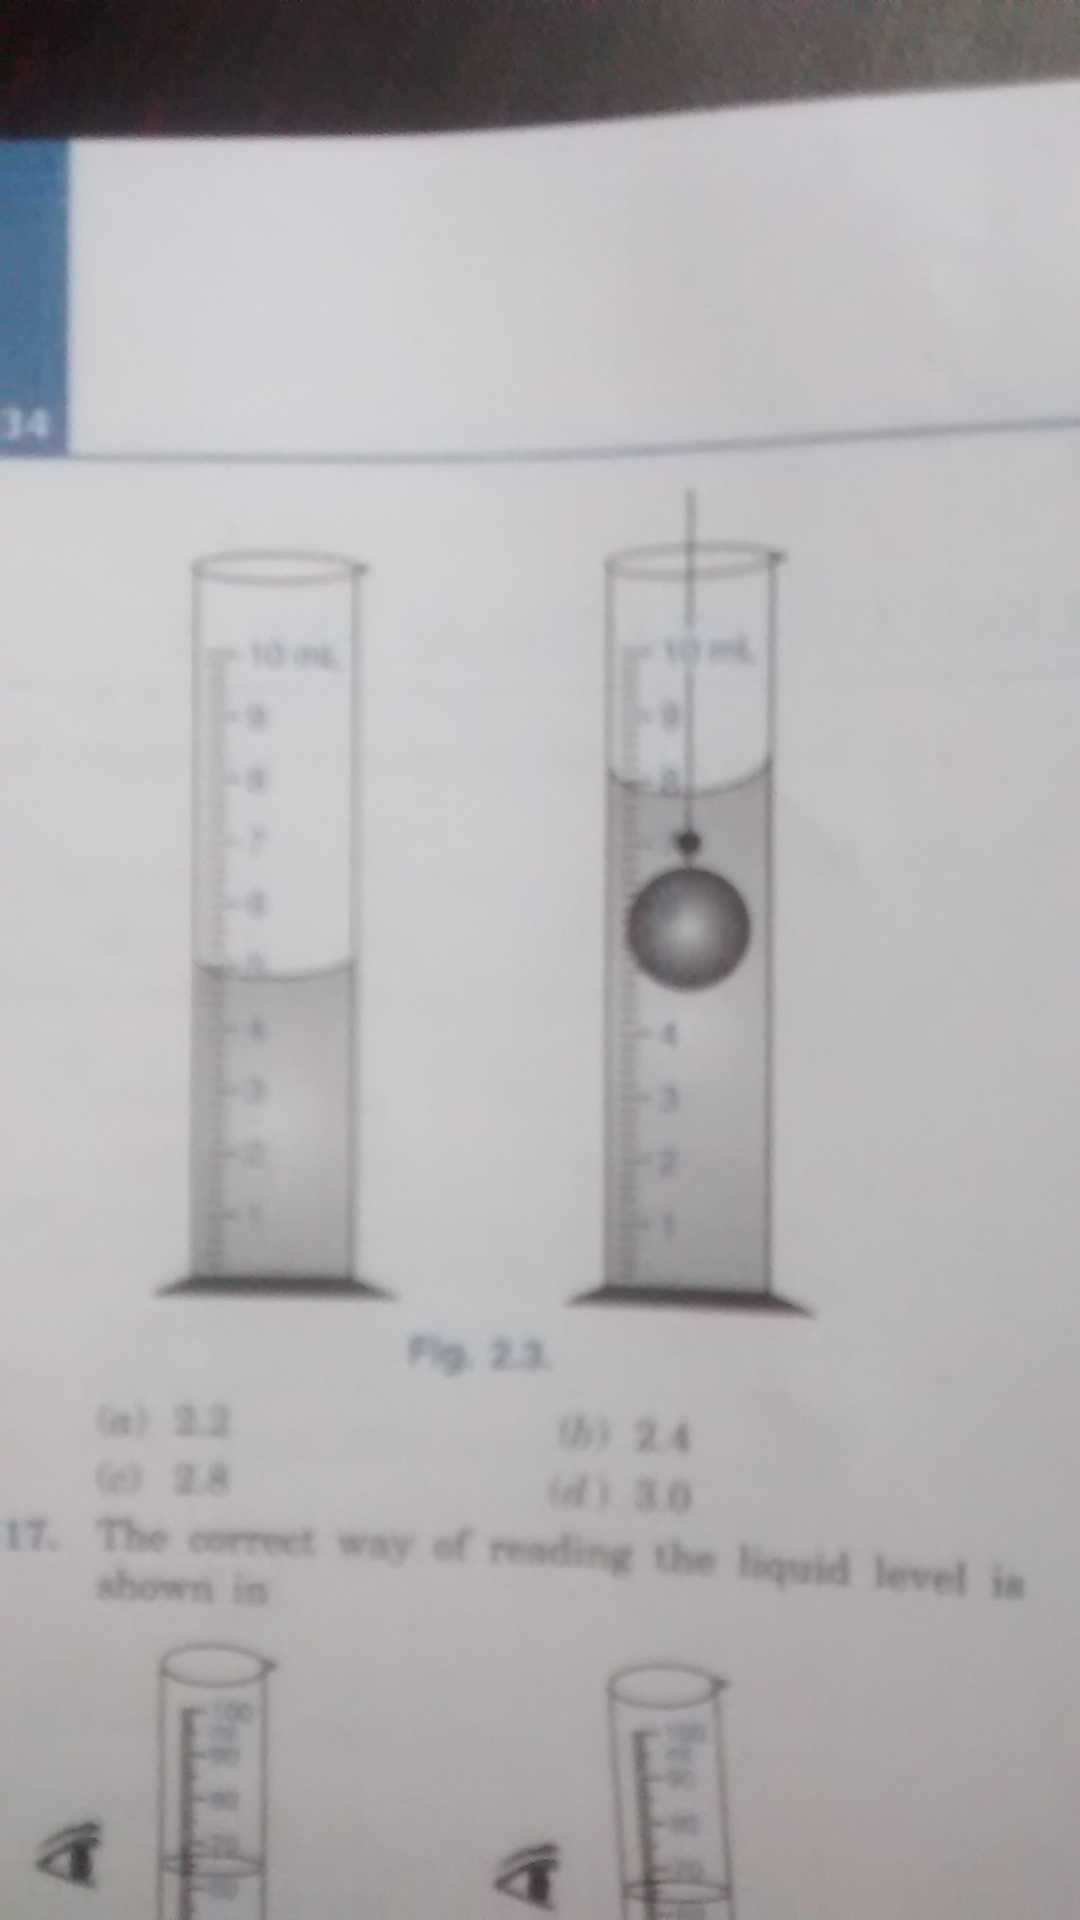 The Water Level In Measuring Cylinder Before And After